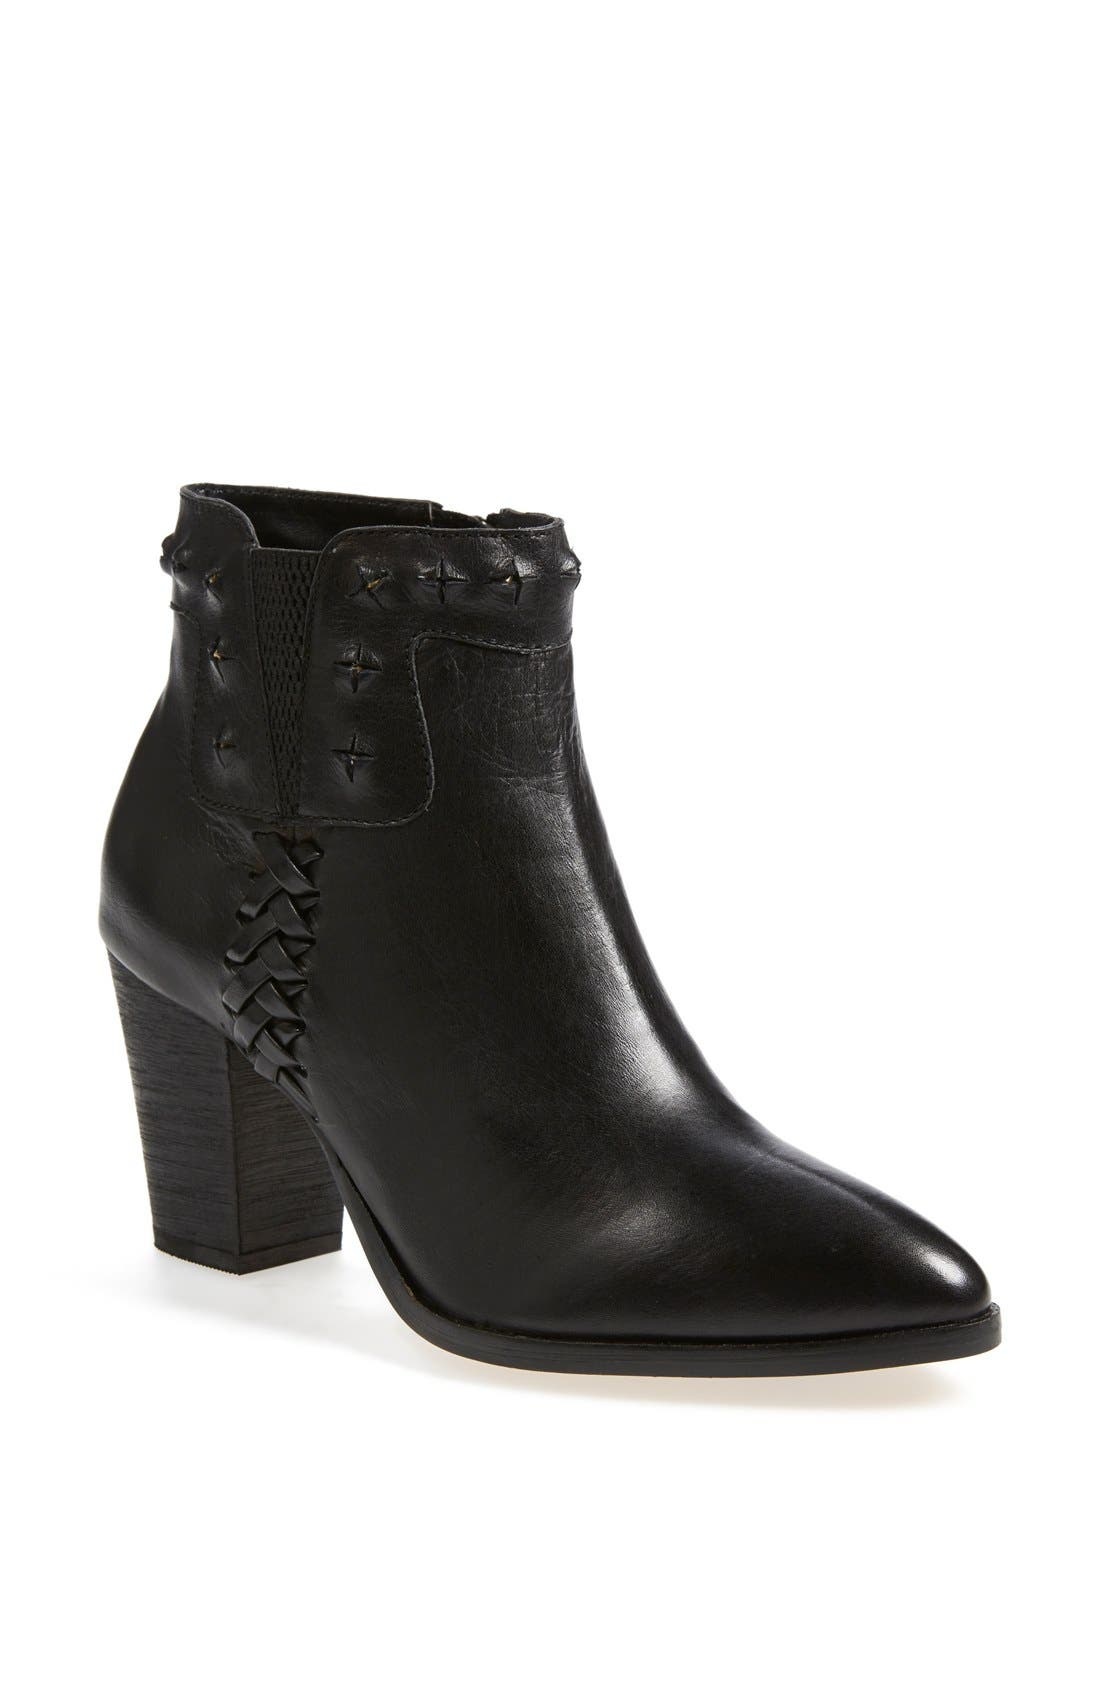 DV BY DOLCE VITA,                             'Cactus' Studded Bootie,                             Main thumbnail 1, color,                             004